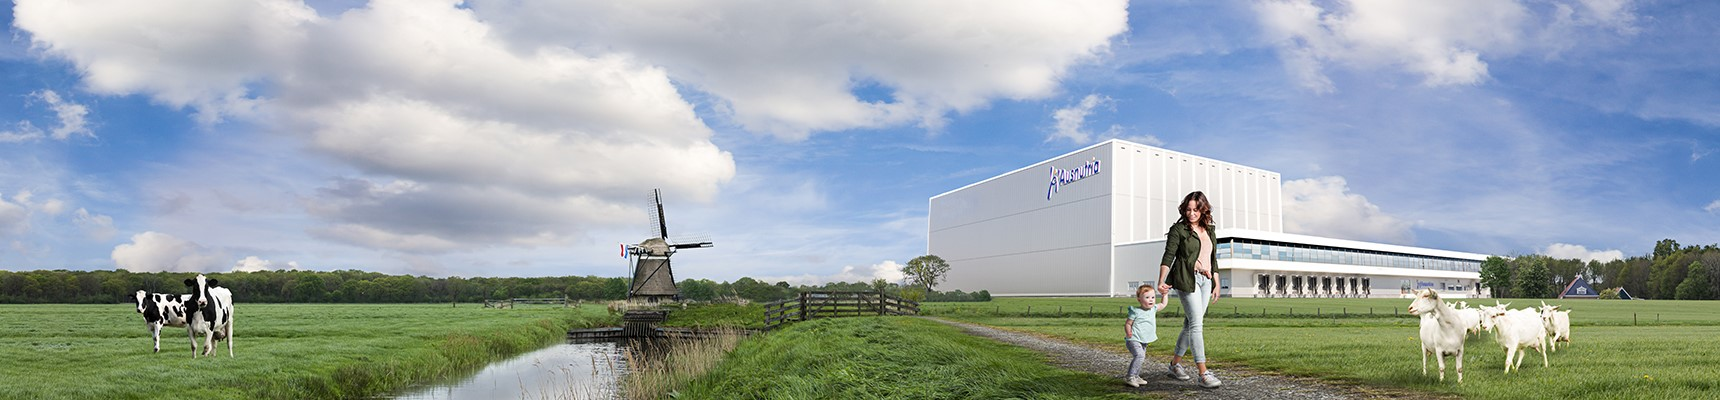 Ausnutria Netherlands over 100 years experience in dairy